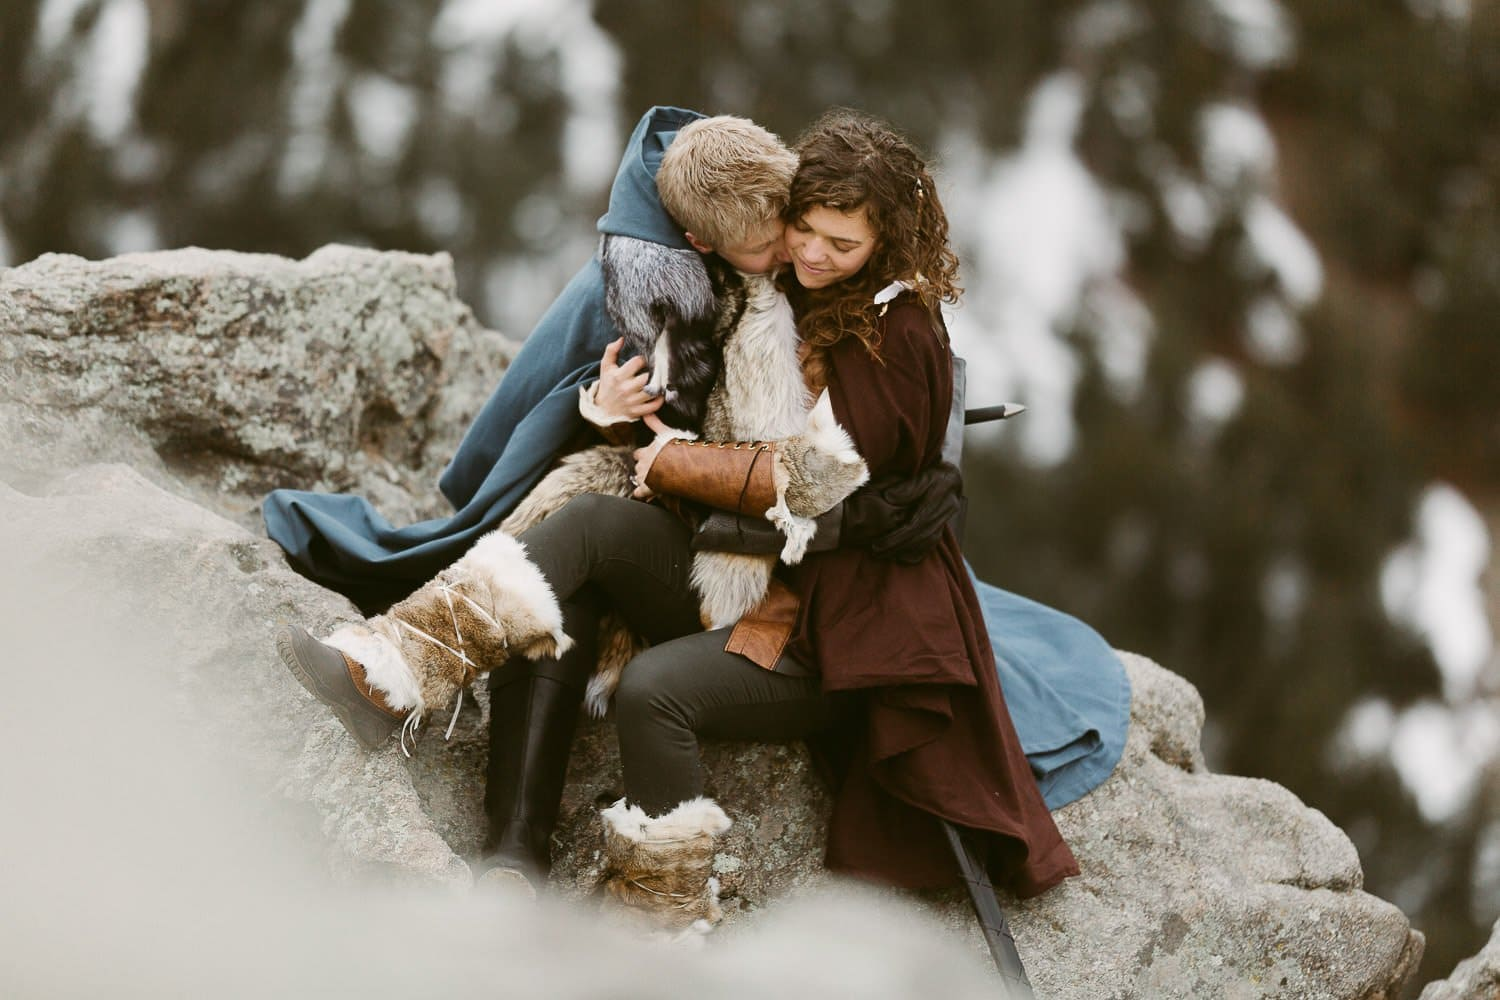 GAME OF THRONES INSPIRED ADVENTURE COUPLES SESSION | COLORADO ADVENTURE ELOPEMENT PHOTOGRAPHER| BOULDER COLORADO ADVENTURE PHOTOGRAPHY| LOST GULCH OUTLOOK ADVENTURE